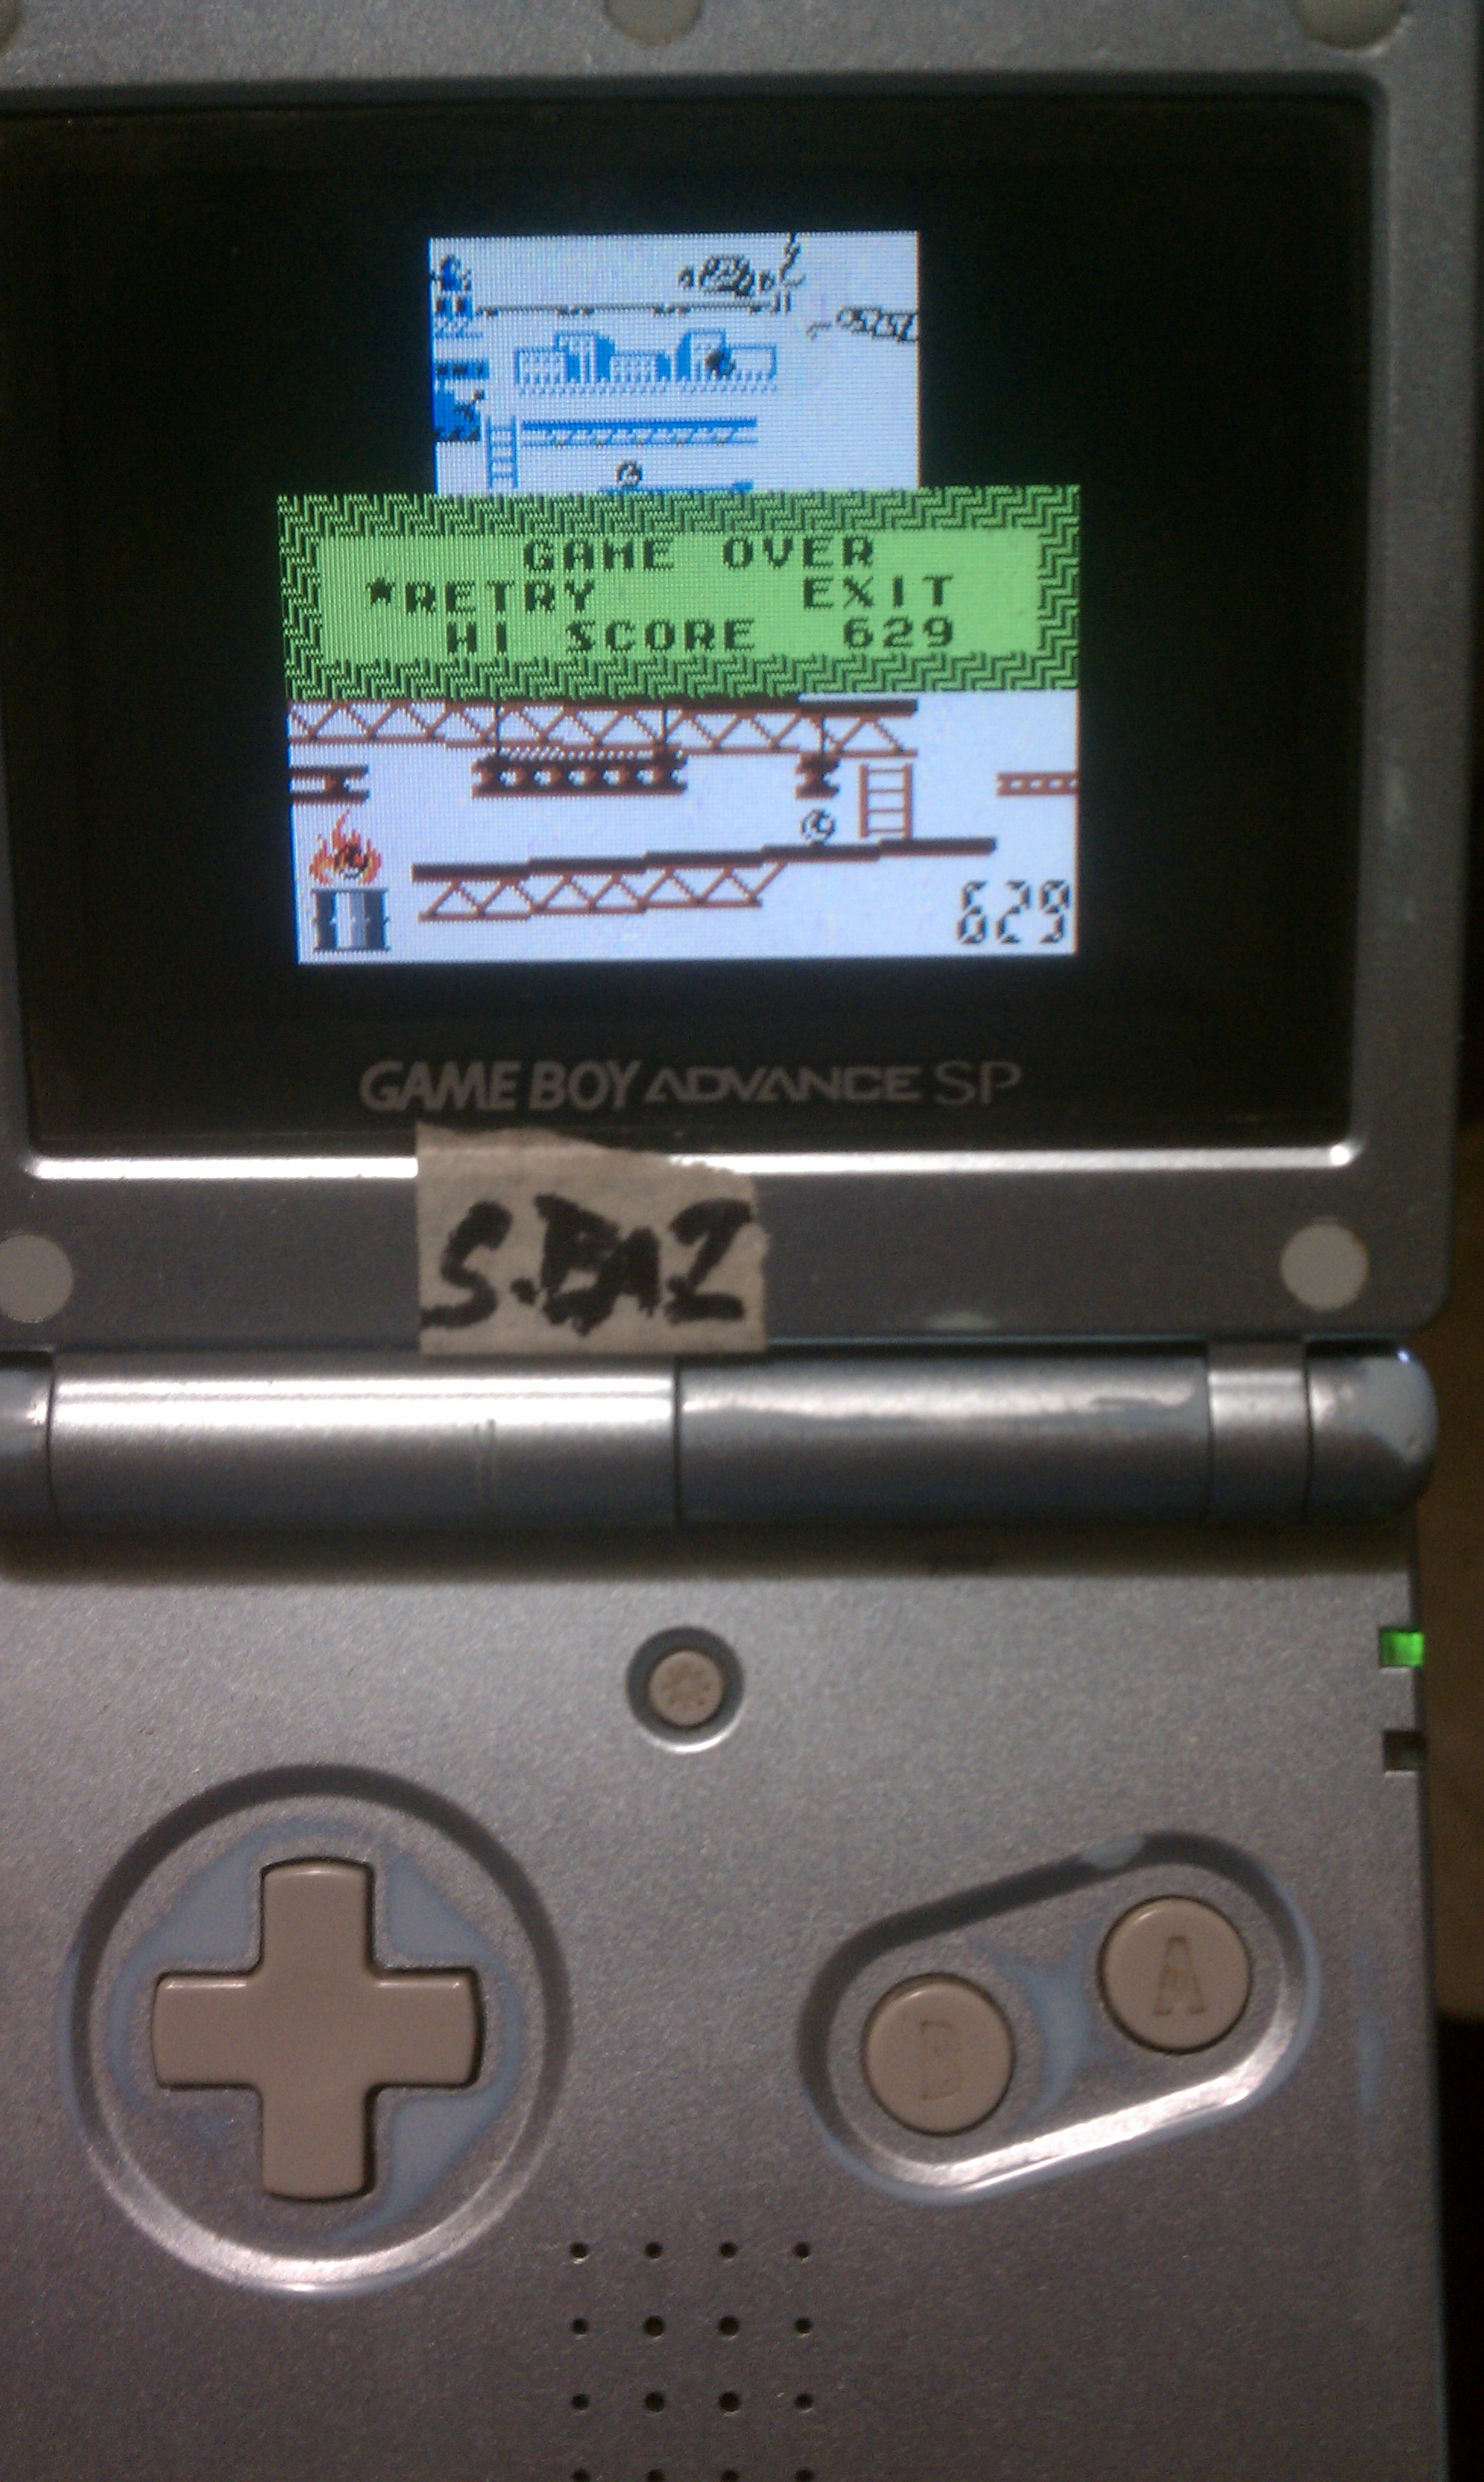 S.BAZ: Game & Watch Gallery 2: Donkey Kong: Classic: Easy (Game Boy Color) 629 points on 2016-02-01 02:49:00